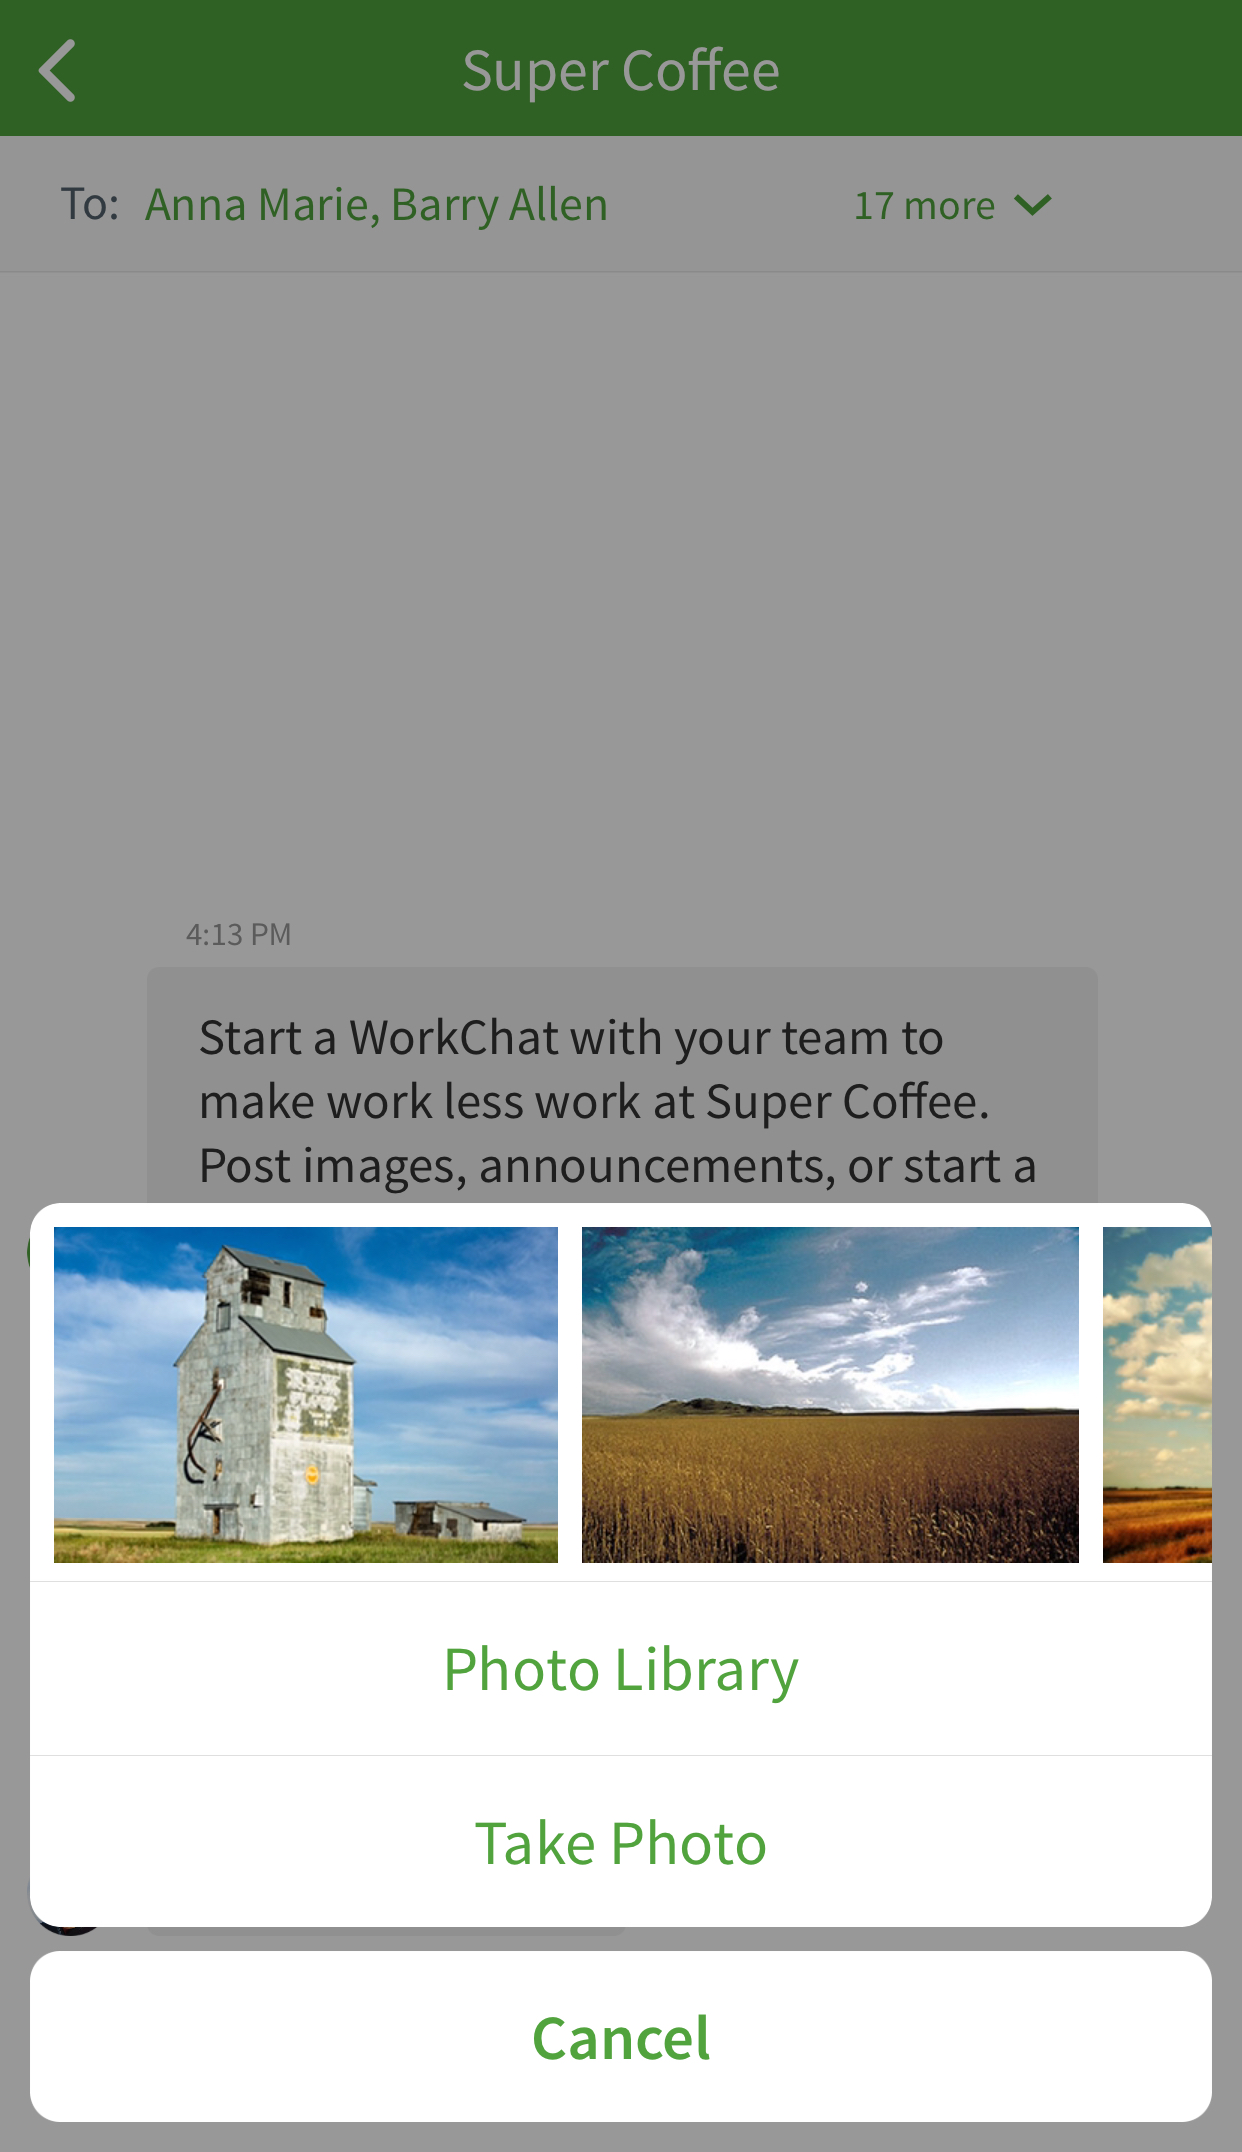 Add photo to work chat